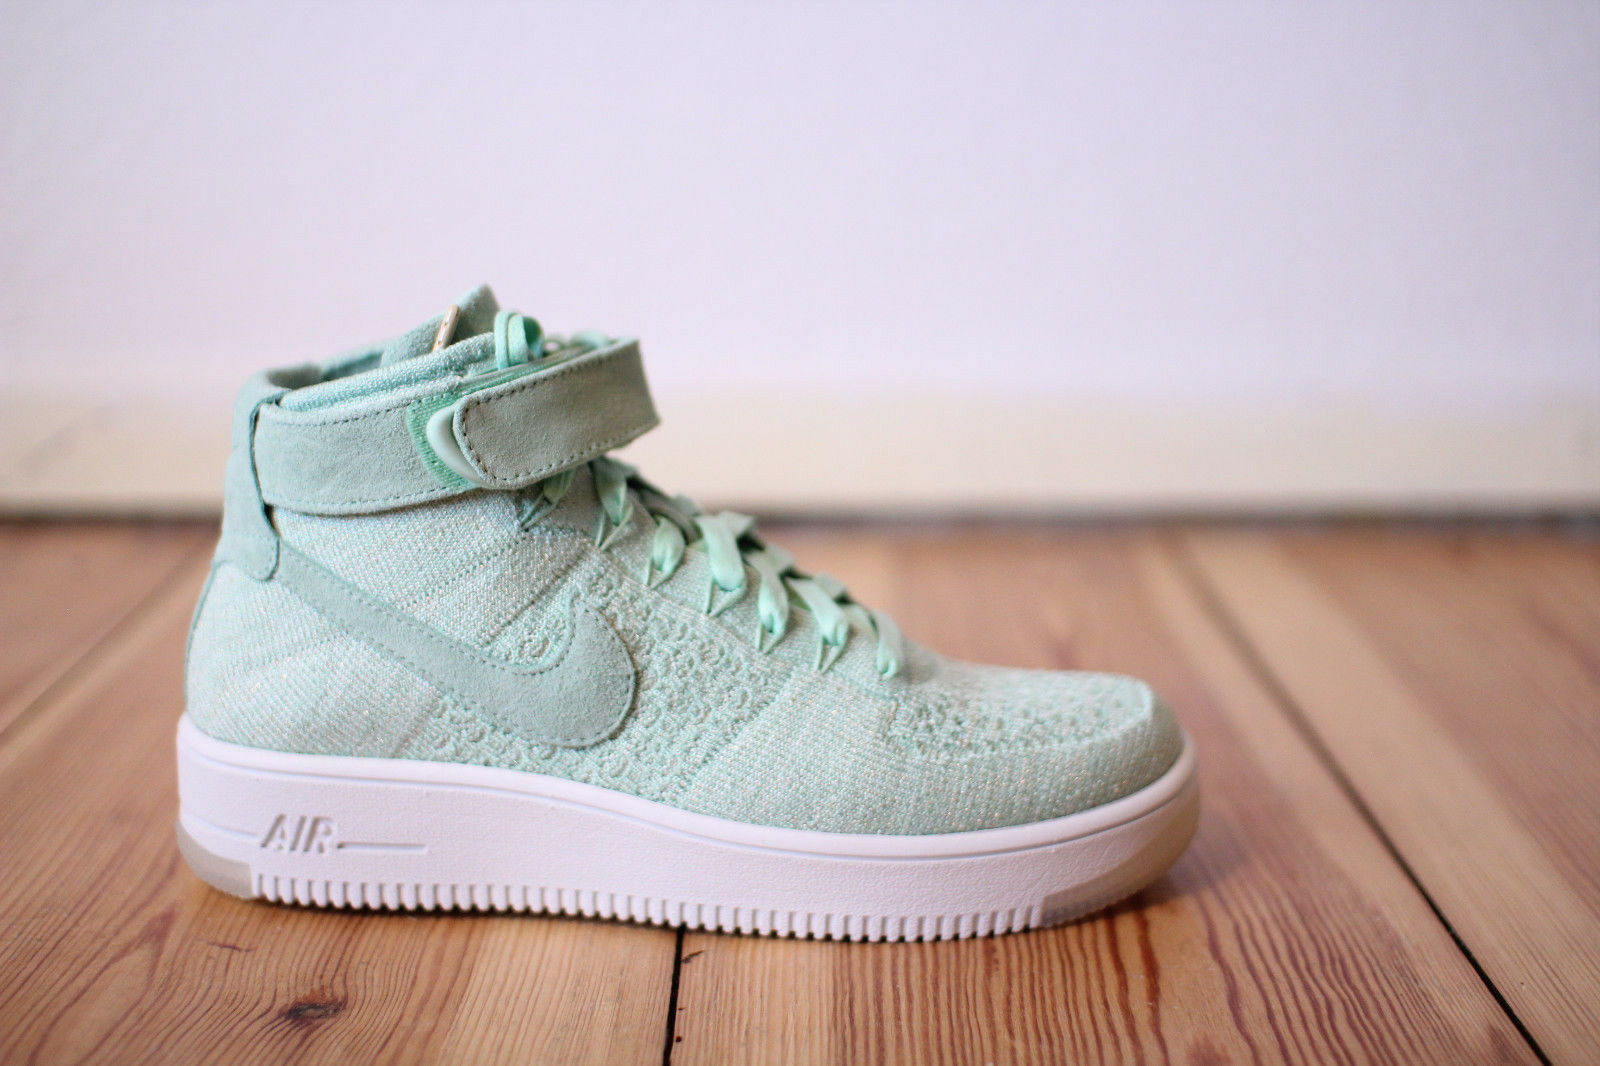 Nike Air Force 1 ultra flyknit flyknit flyknit mid wmns Mint verde talla 37,38,39,40 nuevo & OVP  a precios asequibles